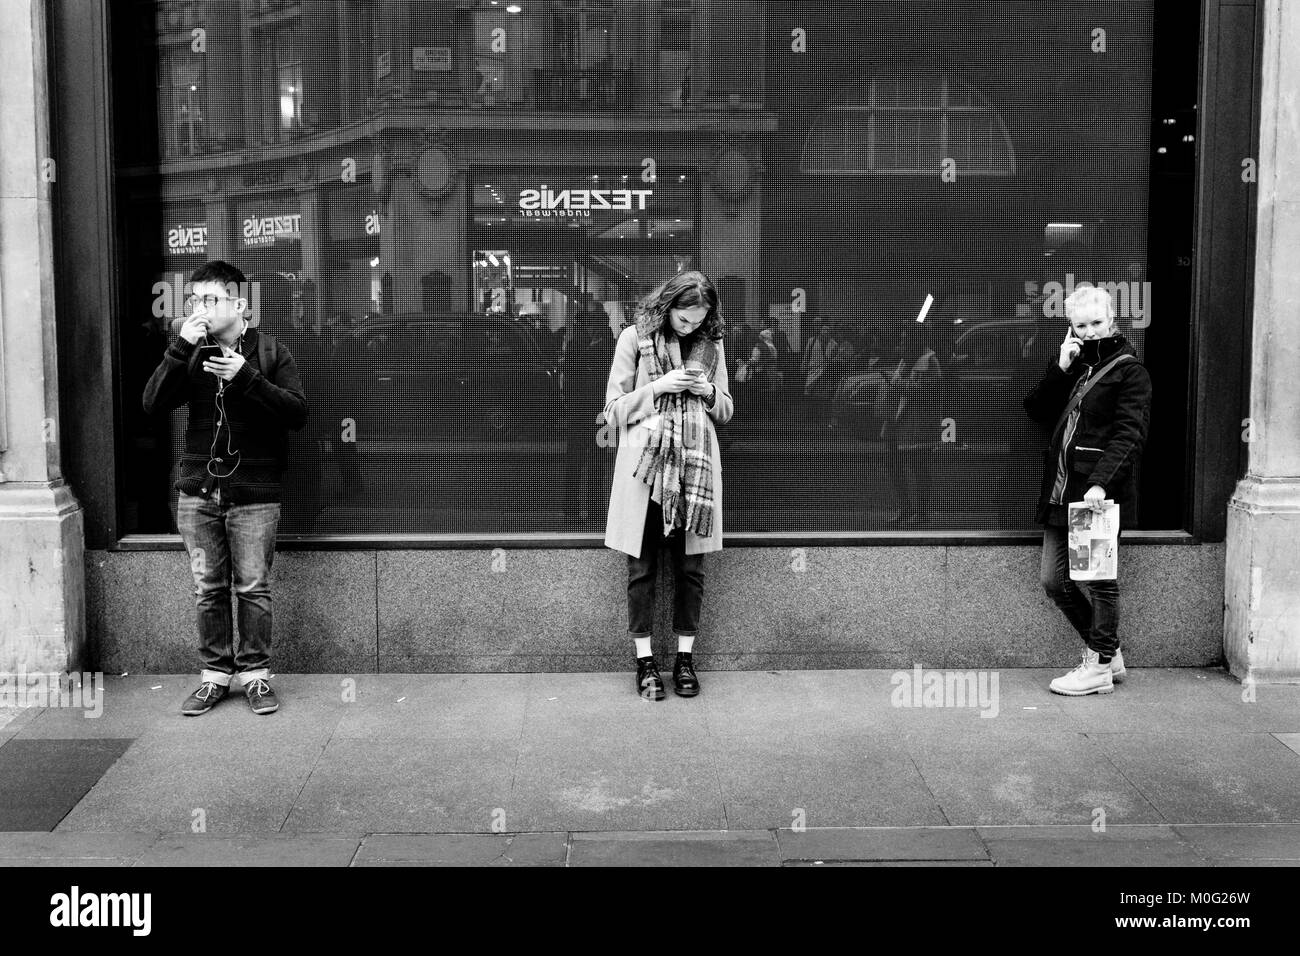 London Black and white street photography: three young people using mobile phones in street - Stock Image